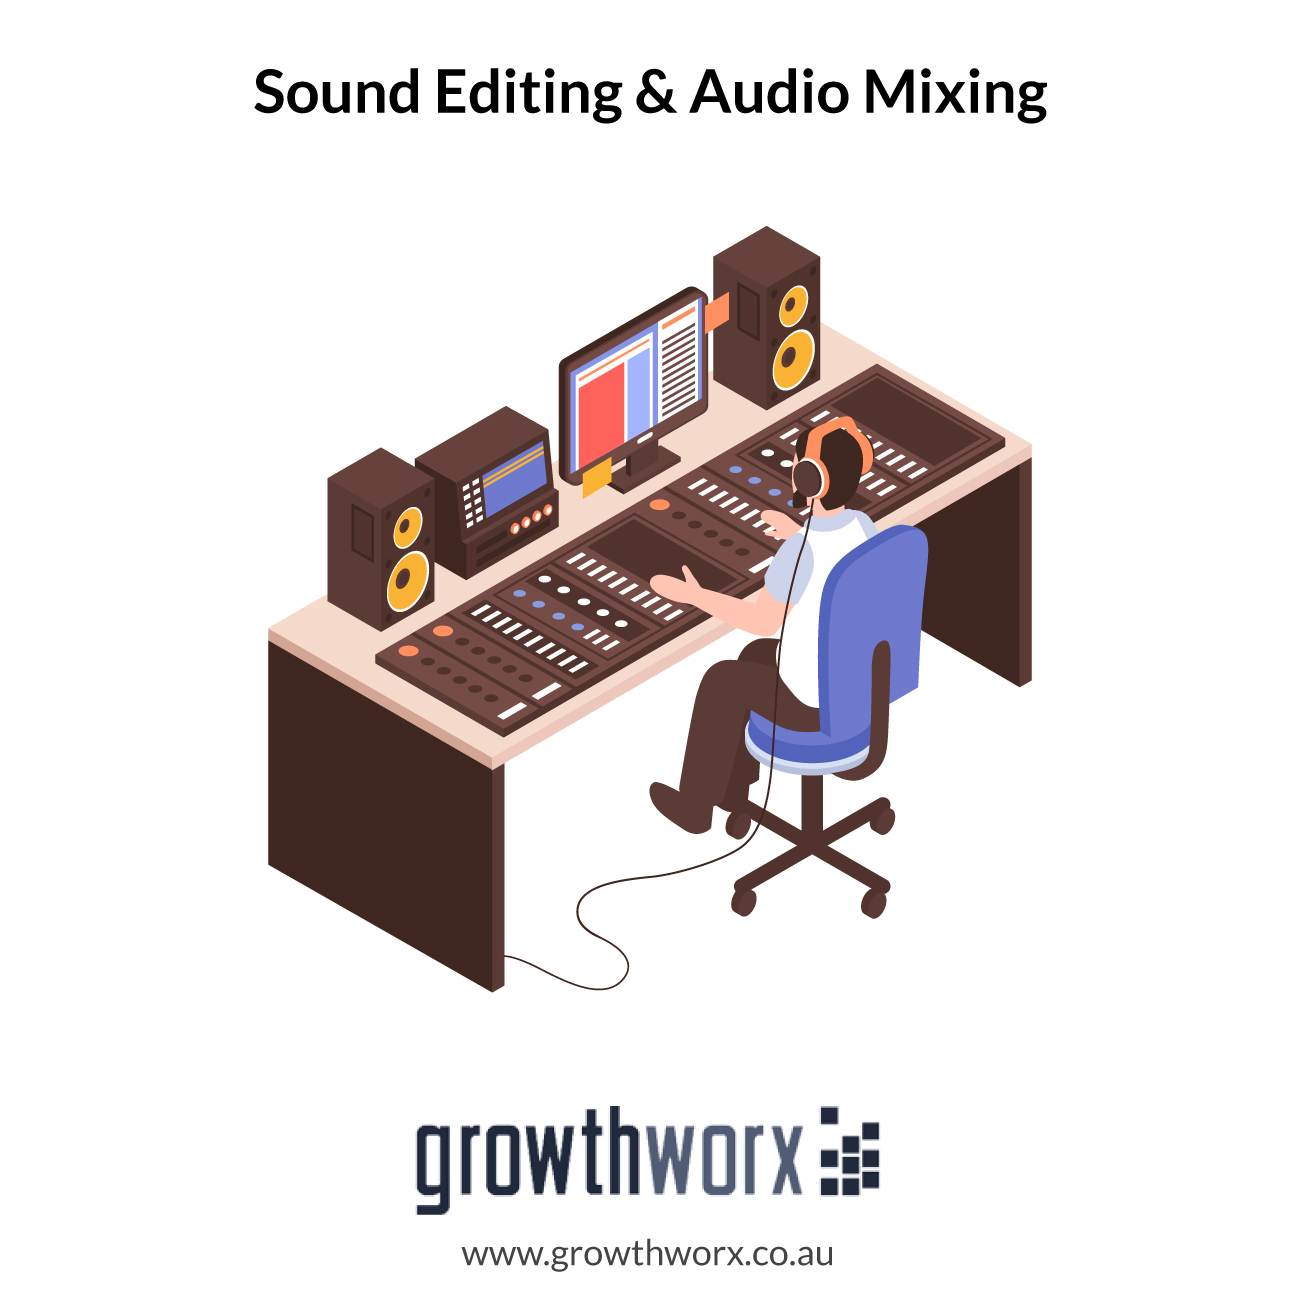 I will do sound editing and audio mixing 1